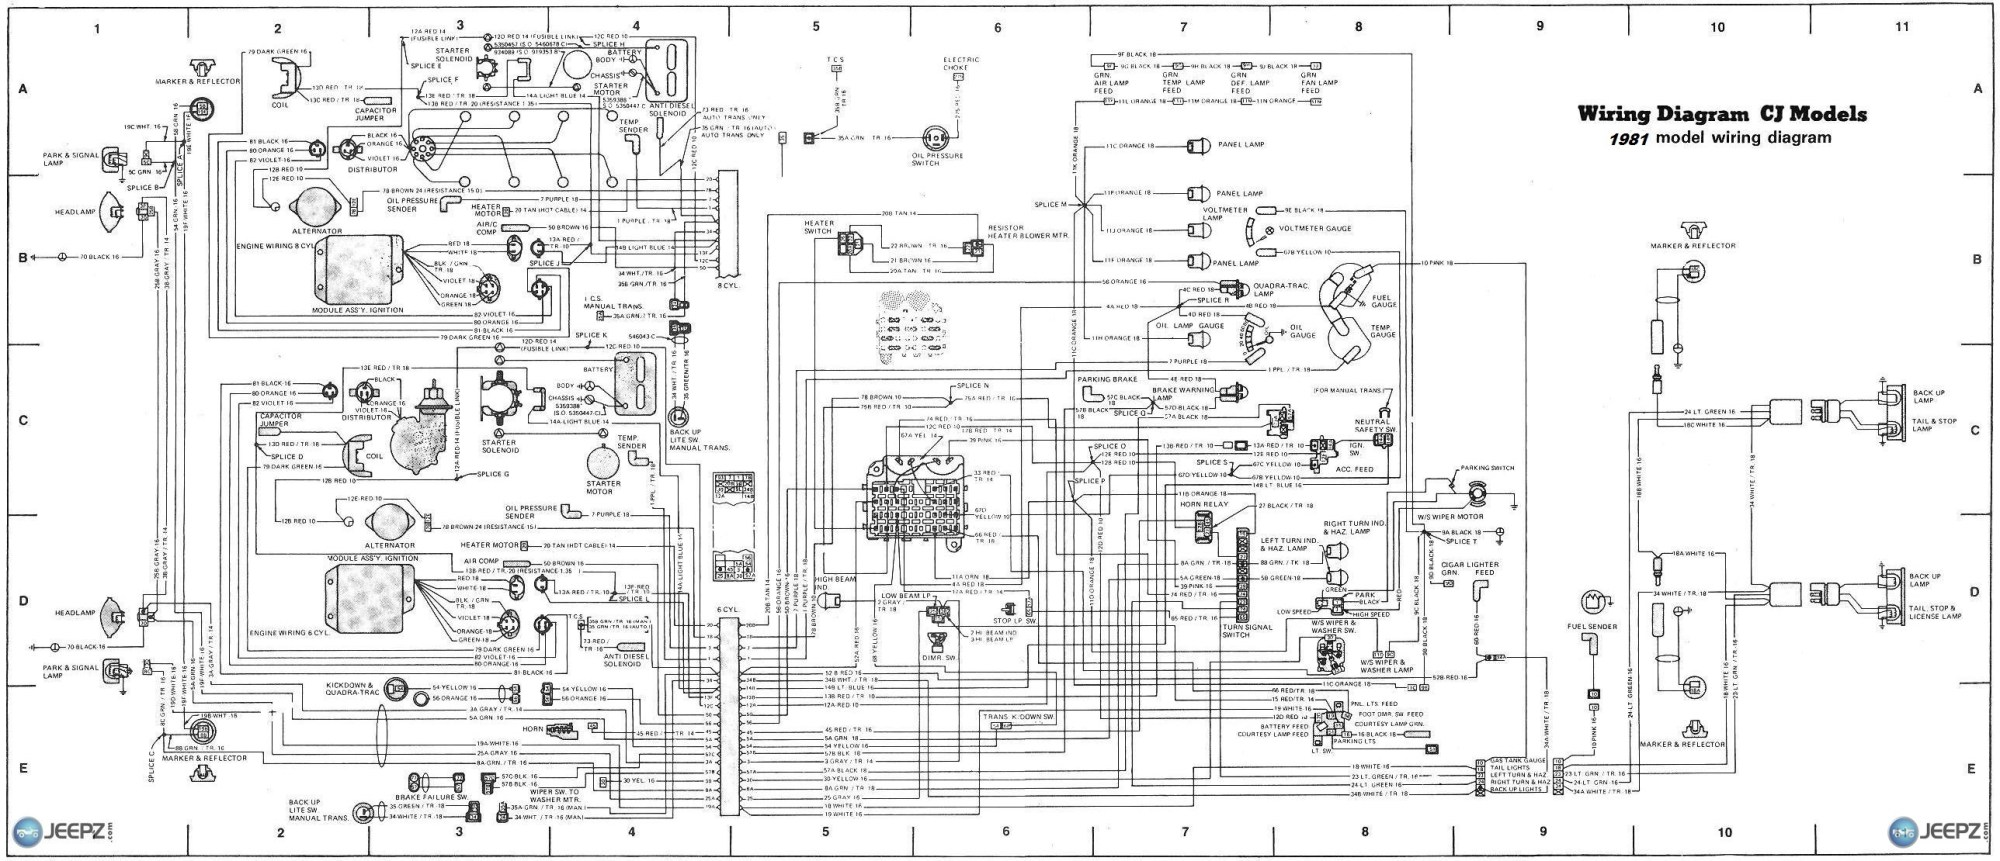 hight resolution of wiring diagram for cj8 diagram data schema 1984 cj8 wiring diagram